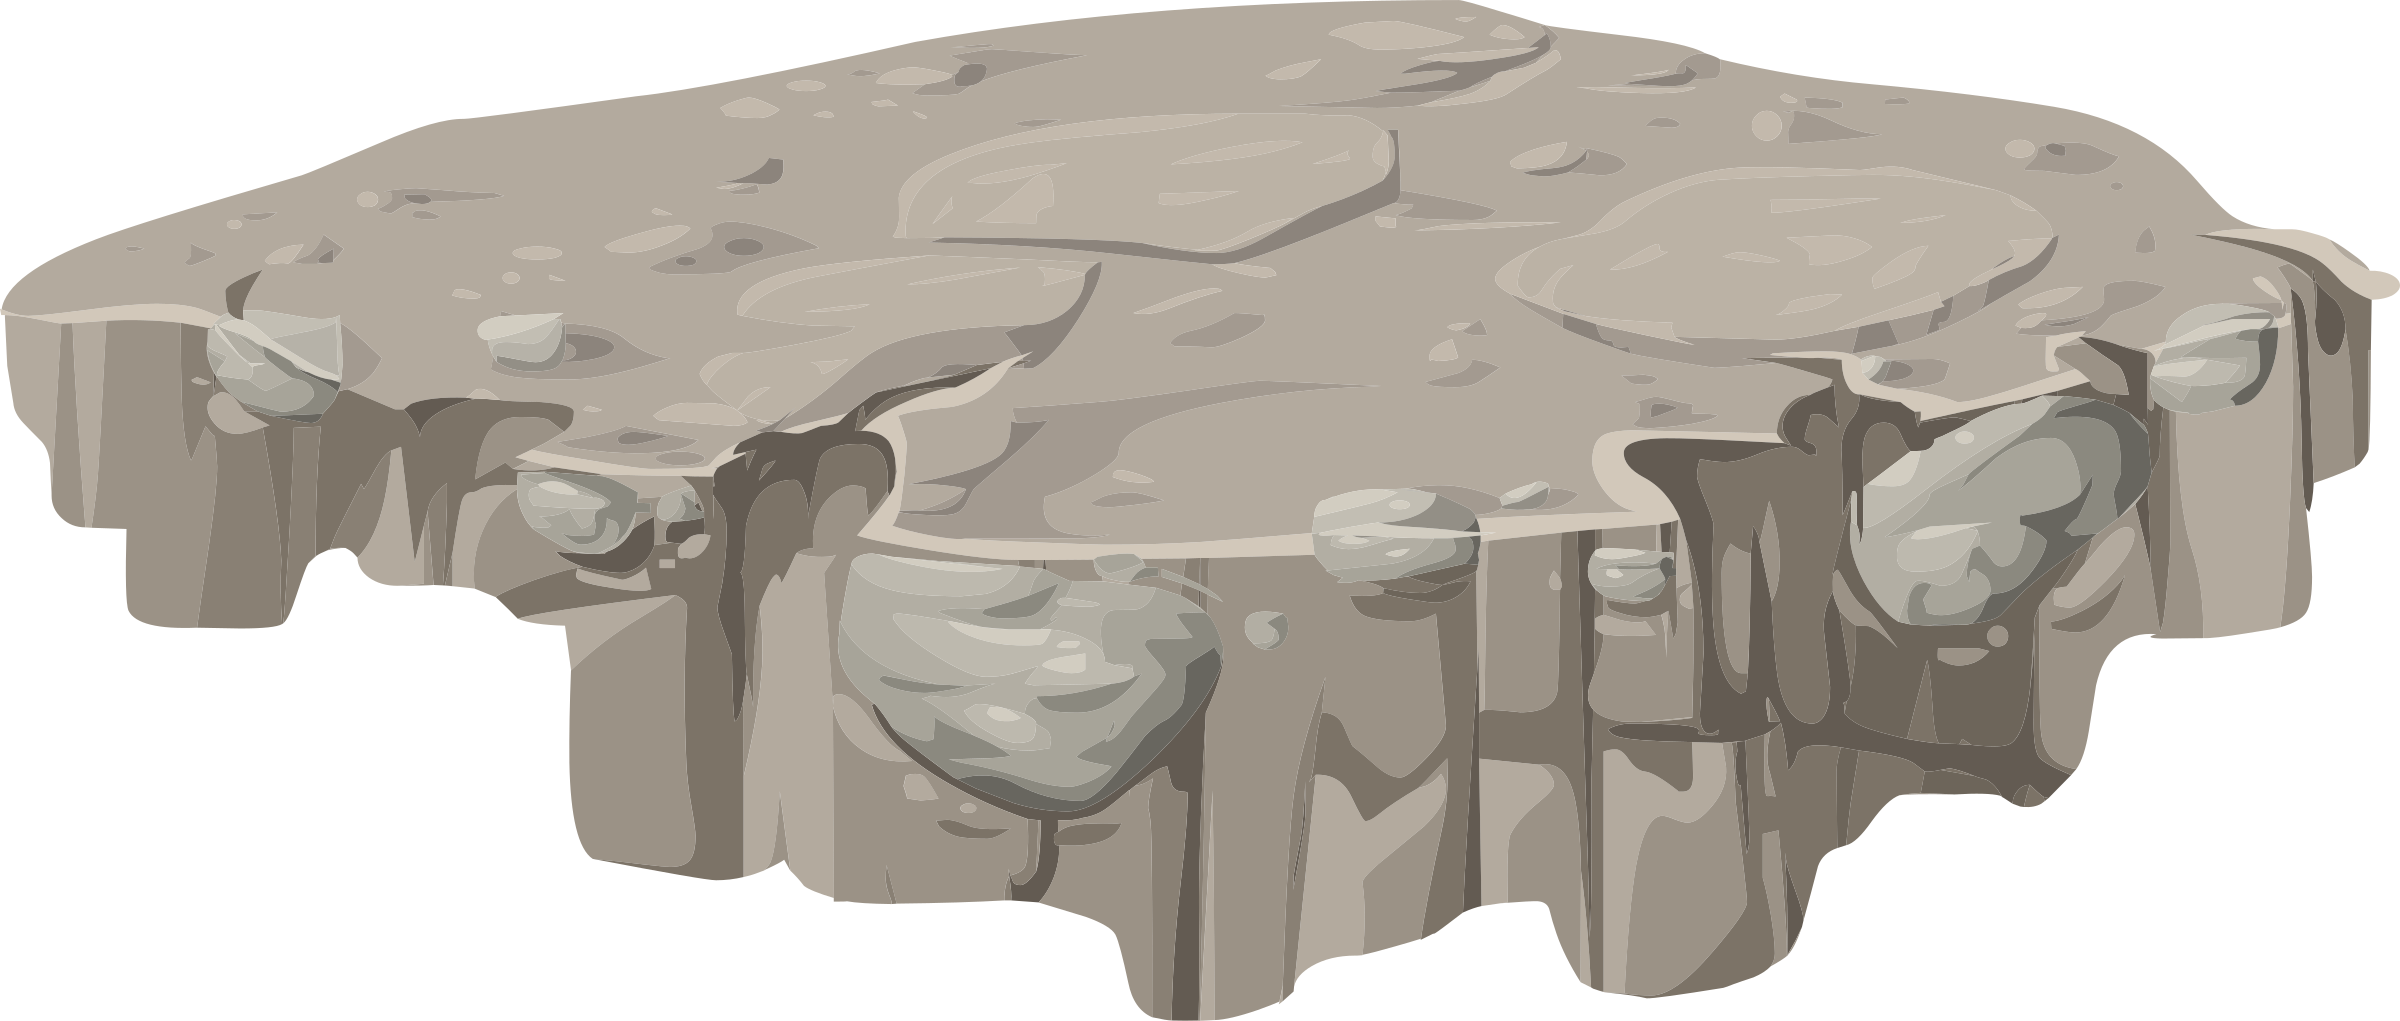 Alpine platform horizontal ledge. Rock clipart landscape